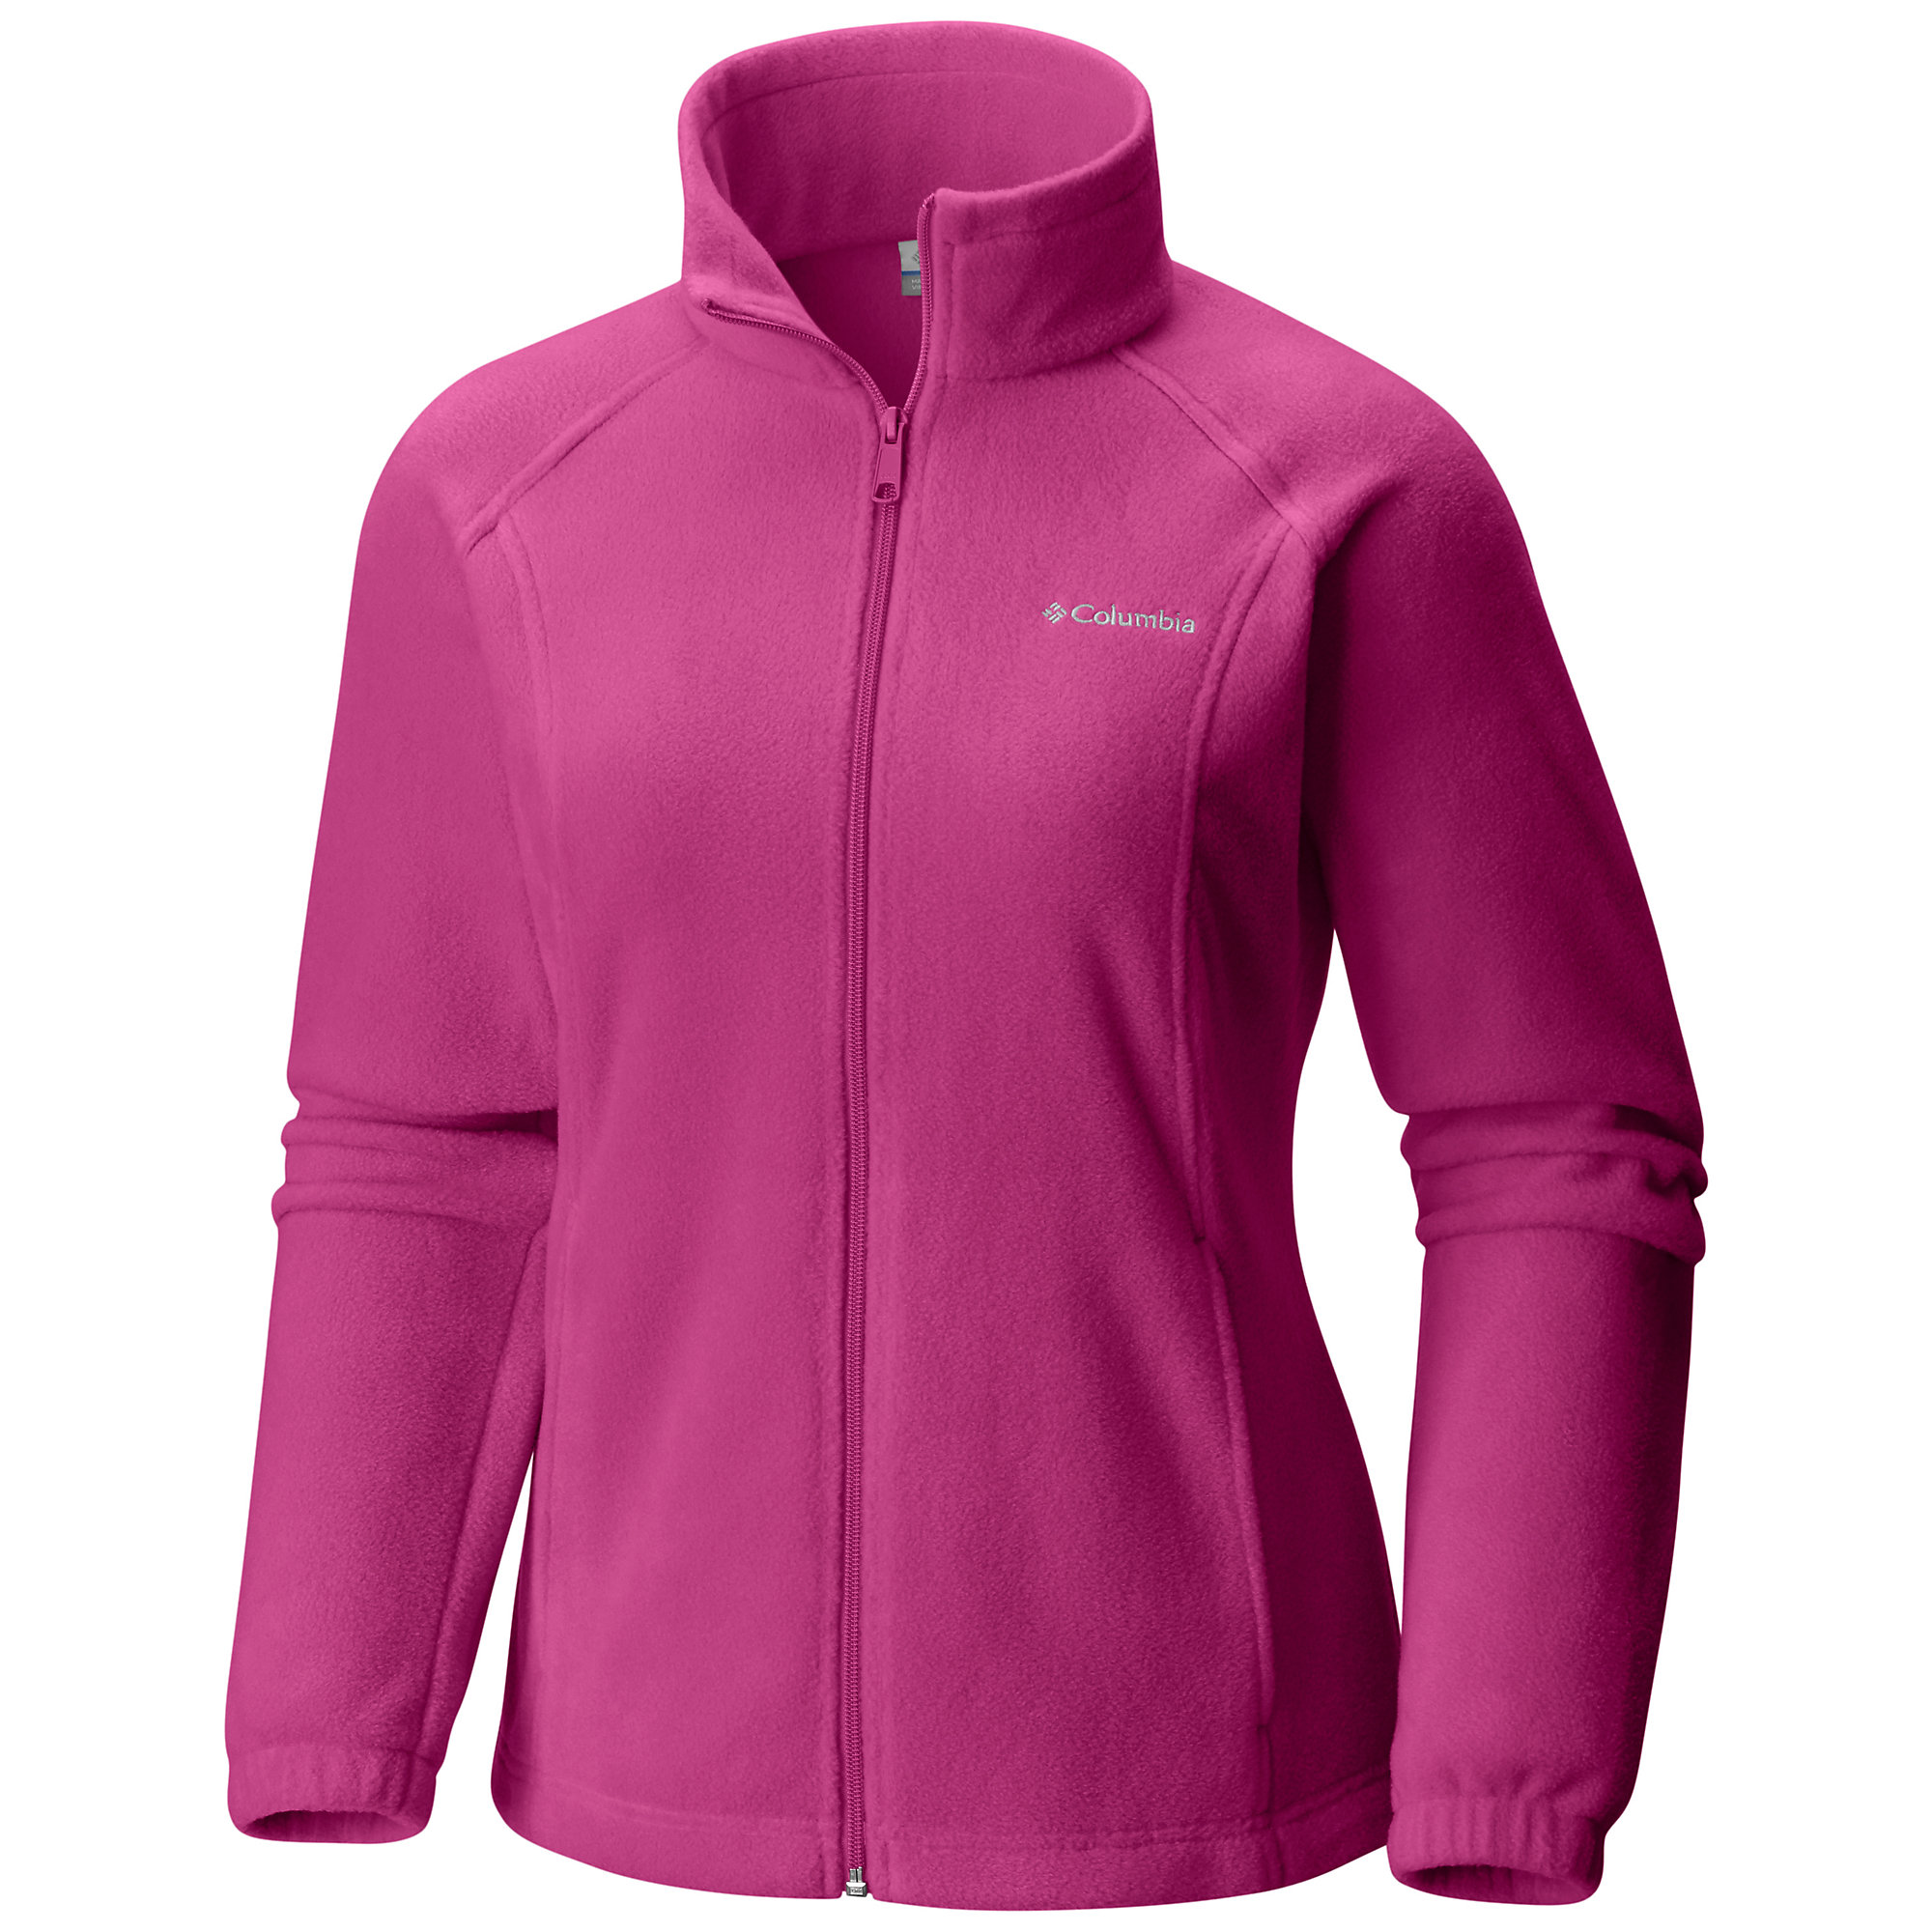 Columbia Benton Springs Full-Zip